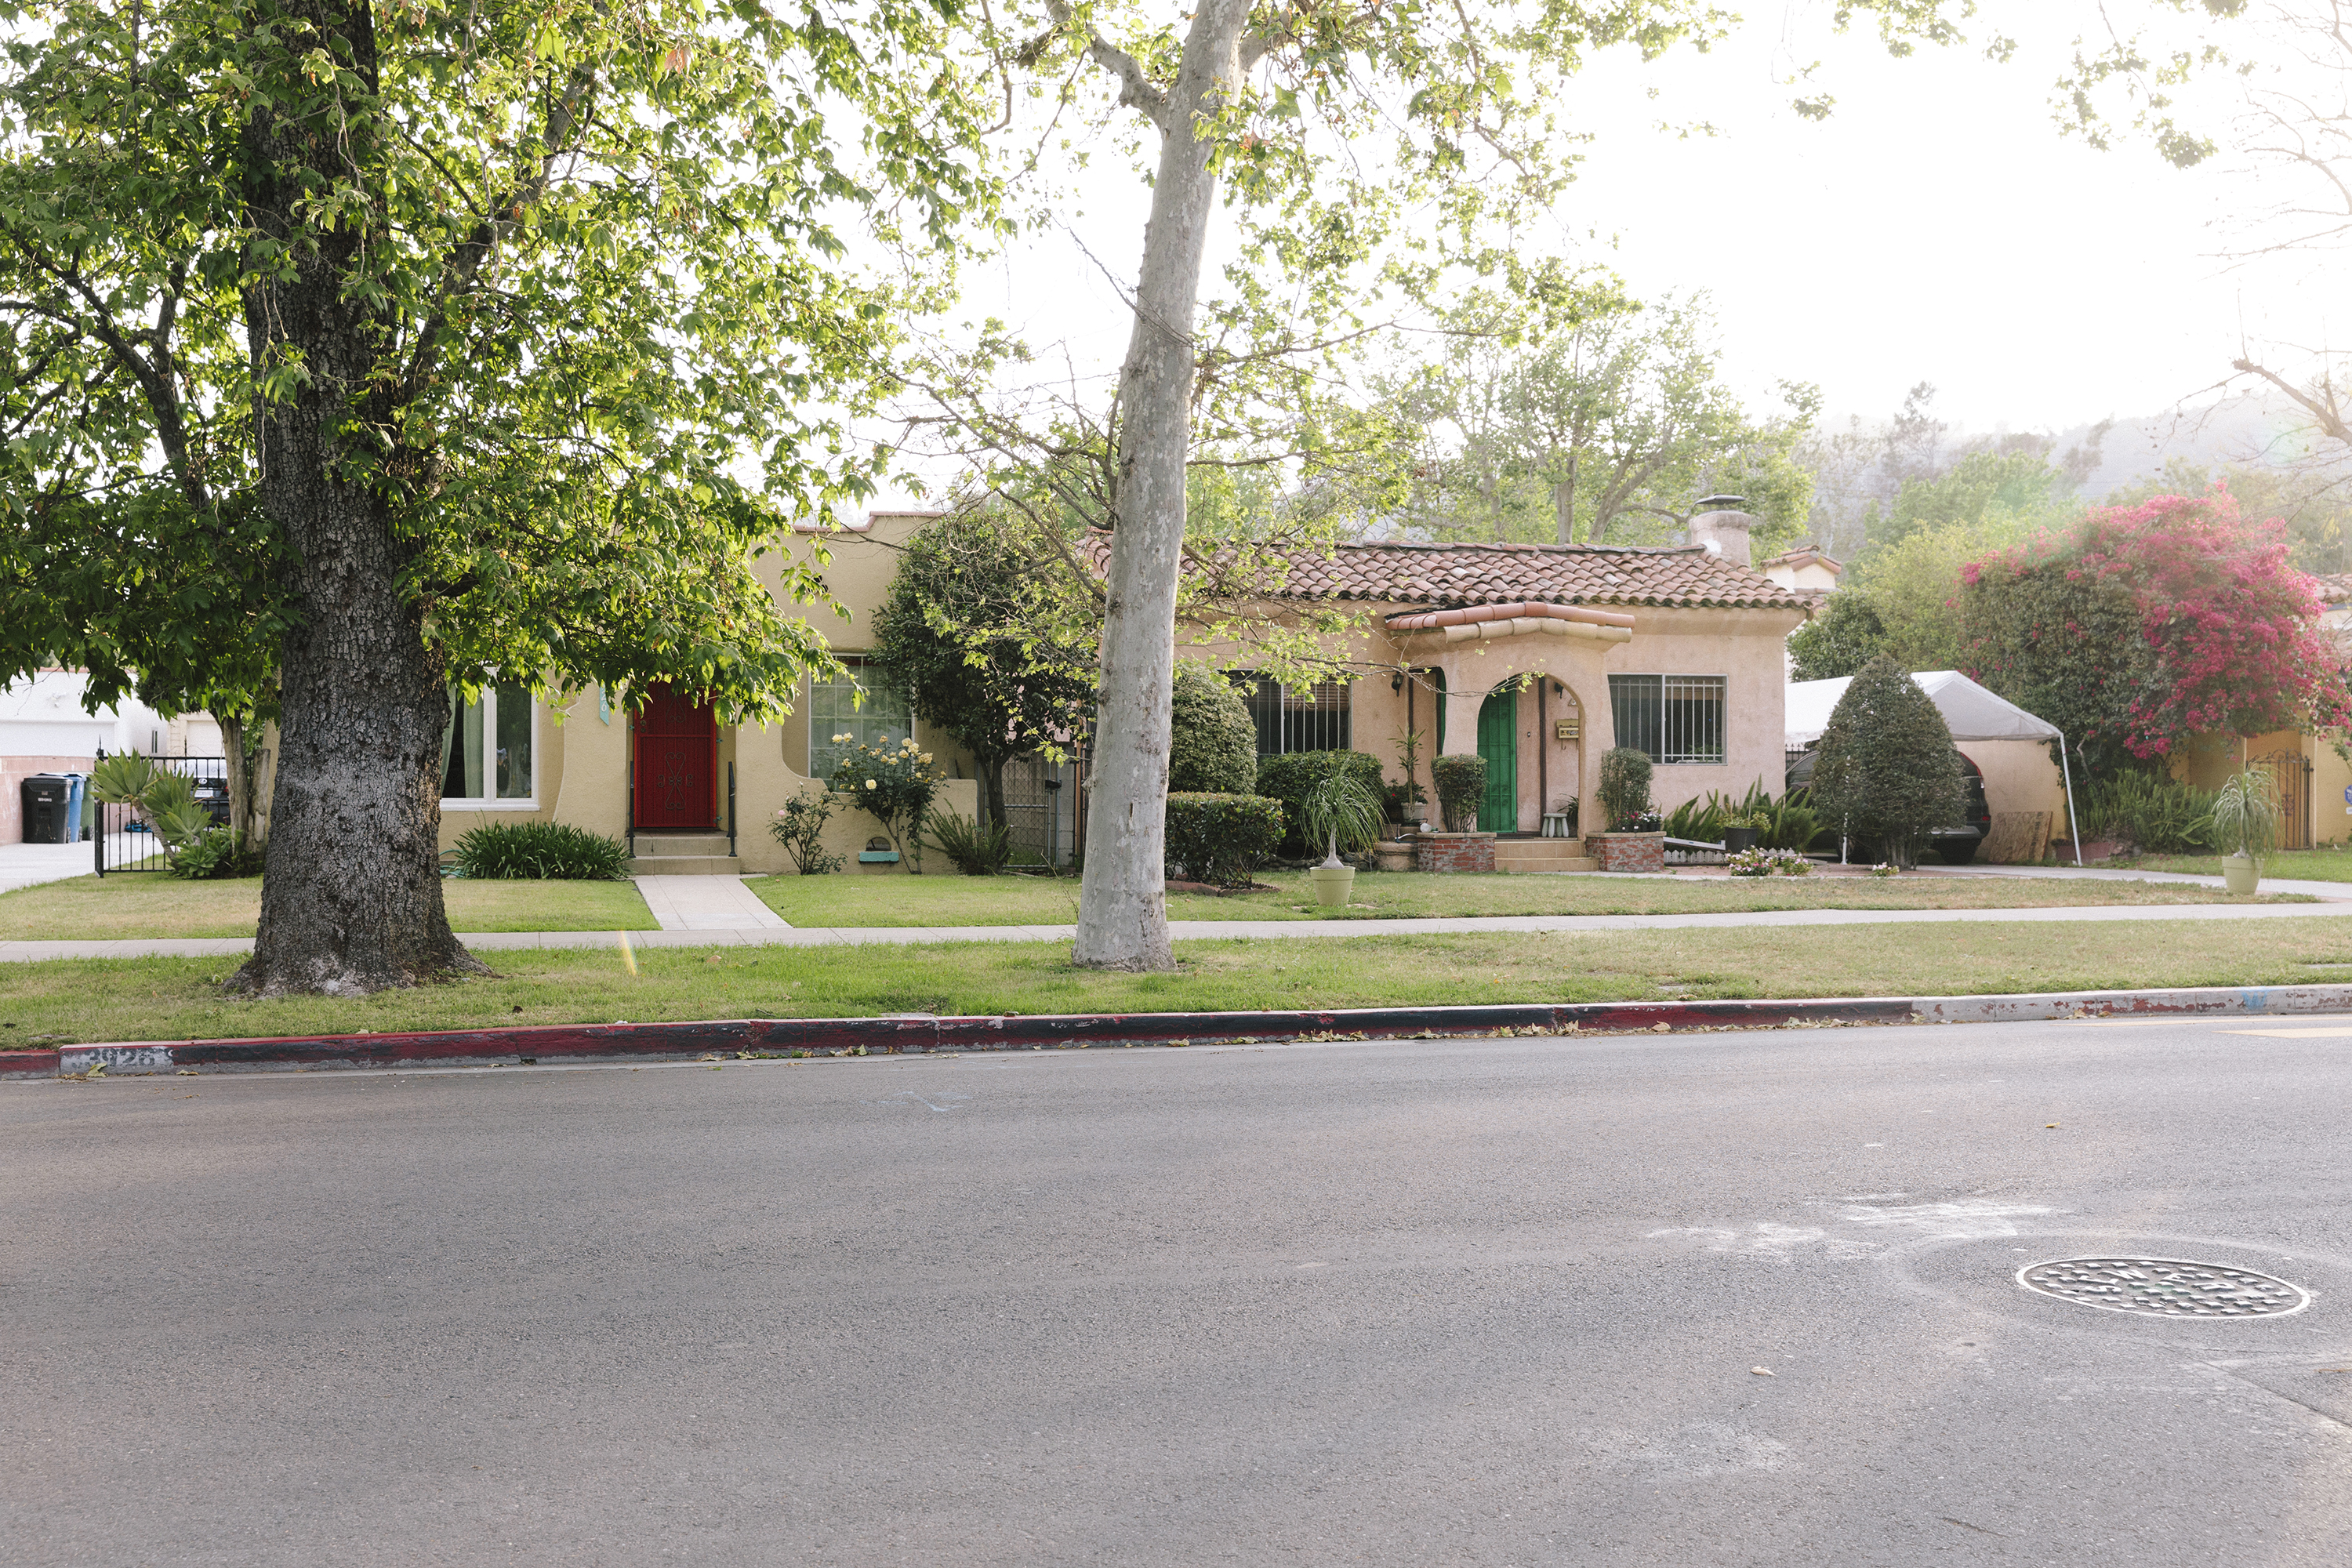 LA's median home price stands at $619K in August